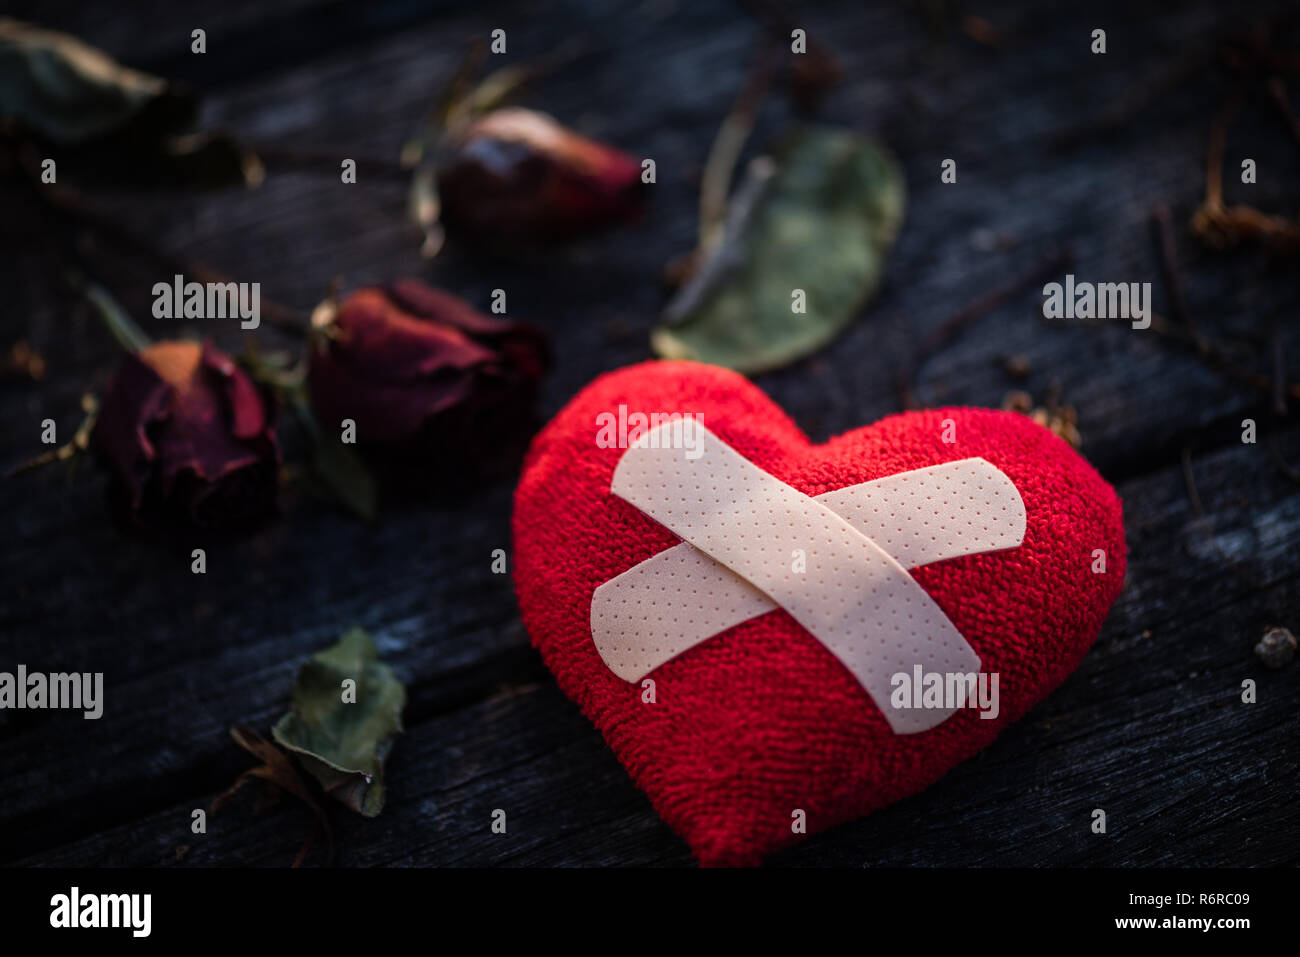 First Aid Band Cushioned Plaster Strip Medical Patch glued on red heart with dried red rose on wooden background. Heart broken, Love and Valentines day concept. - Stock Image